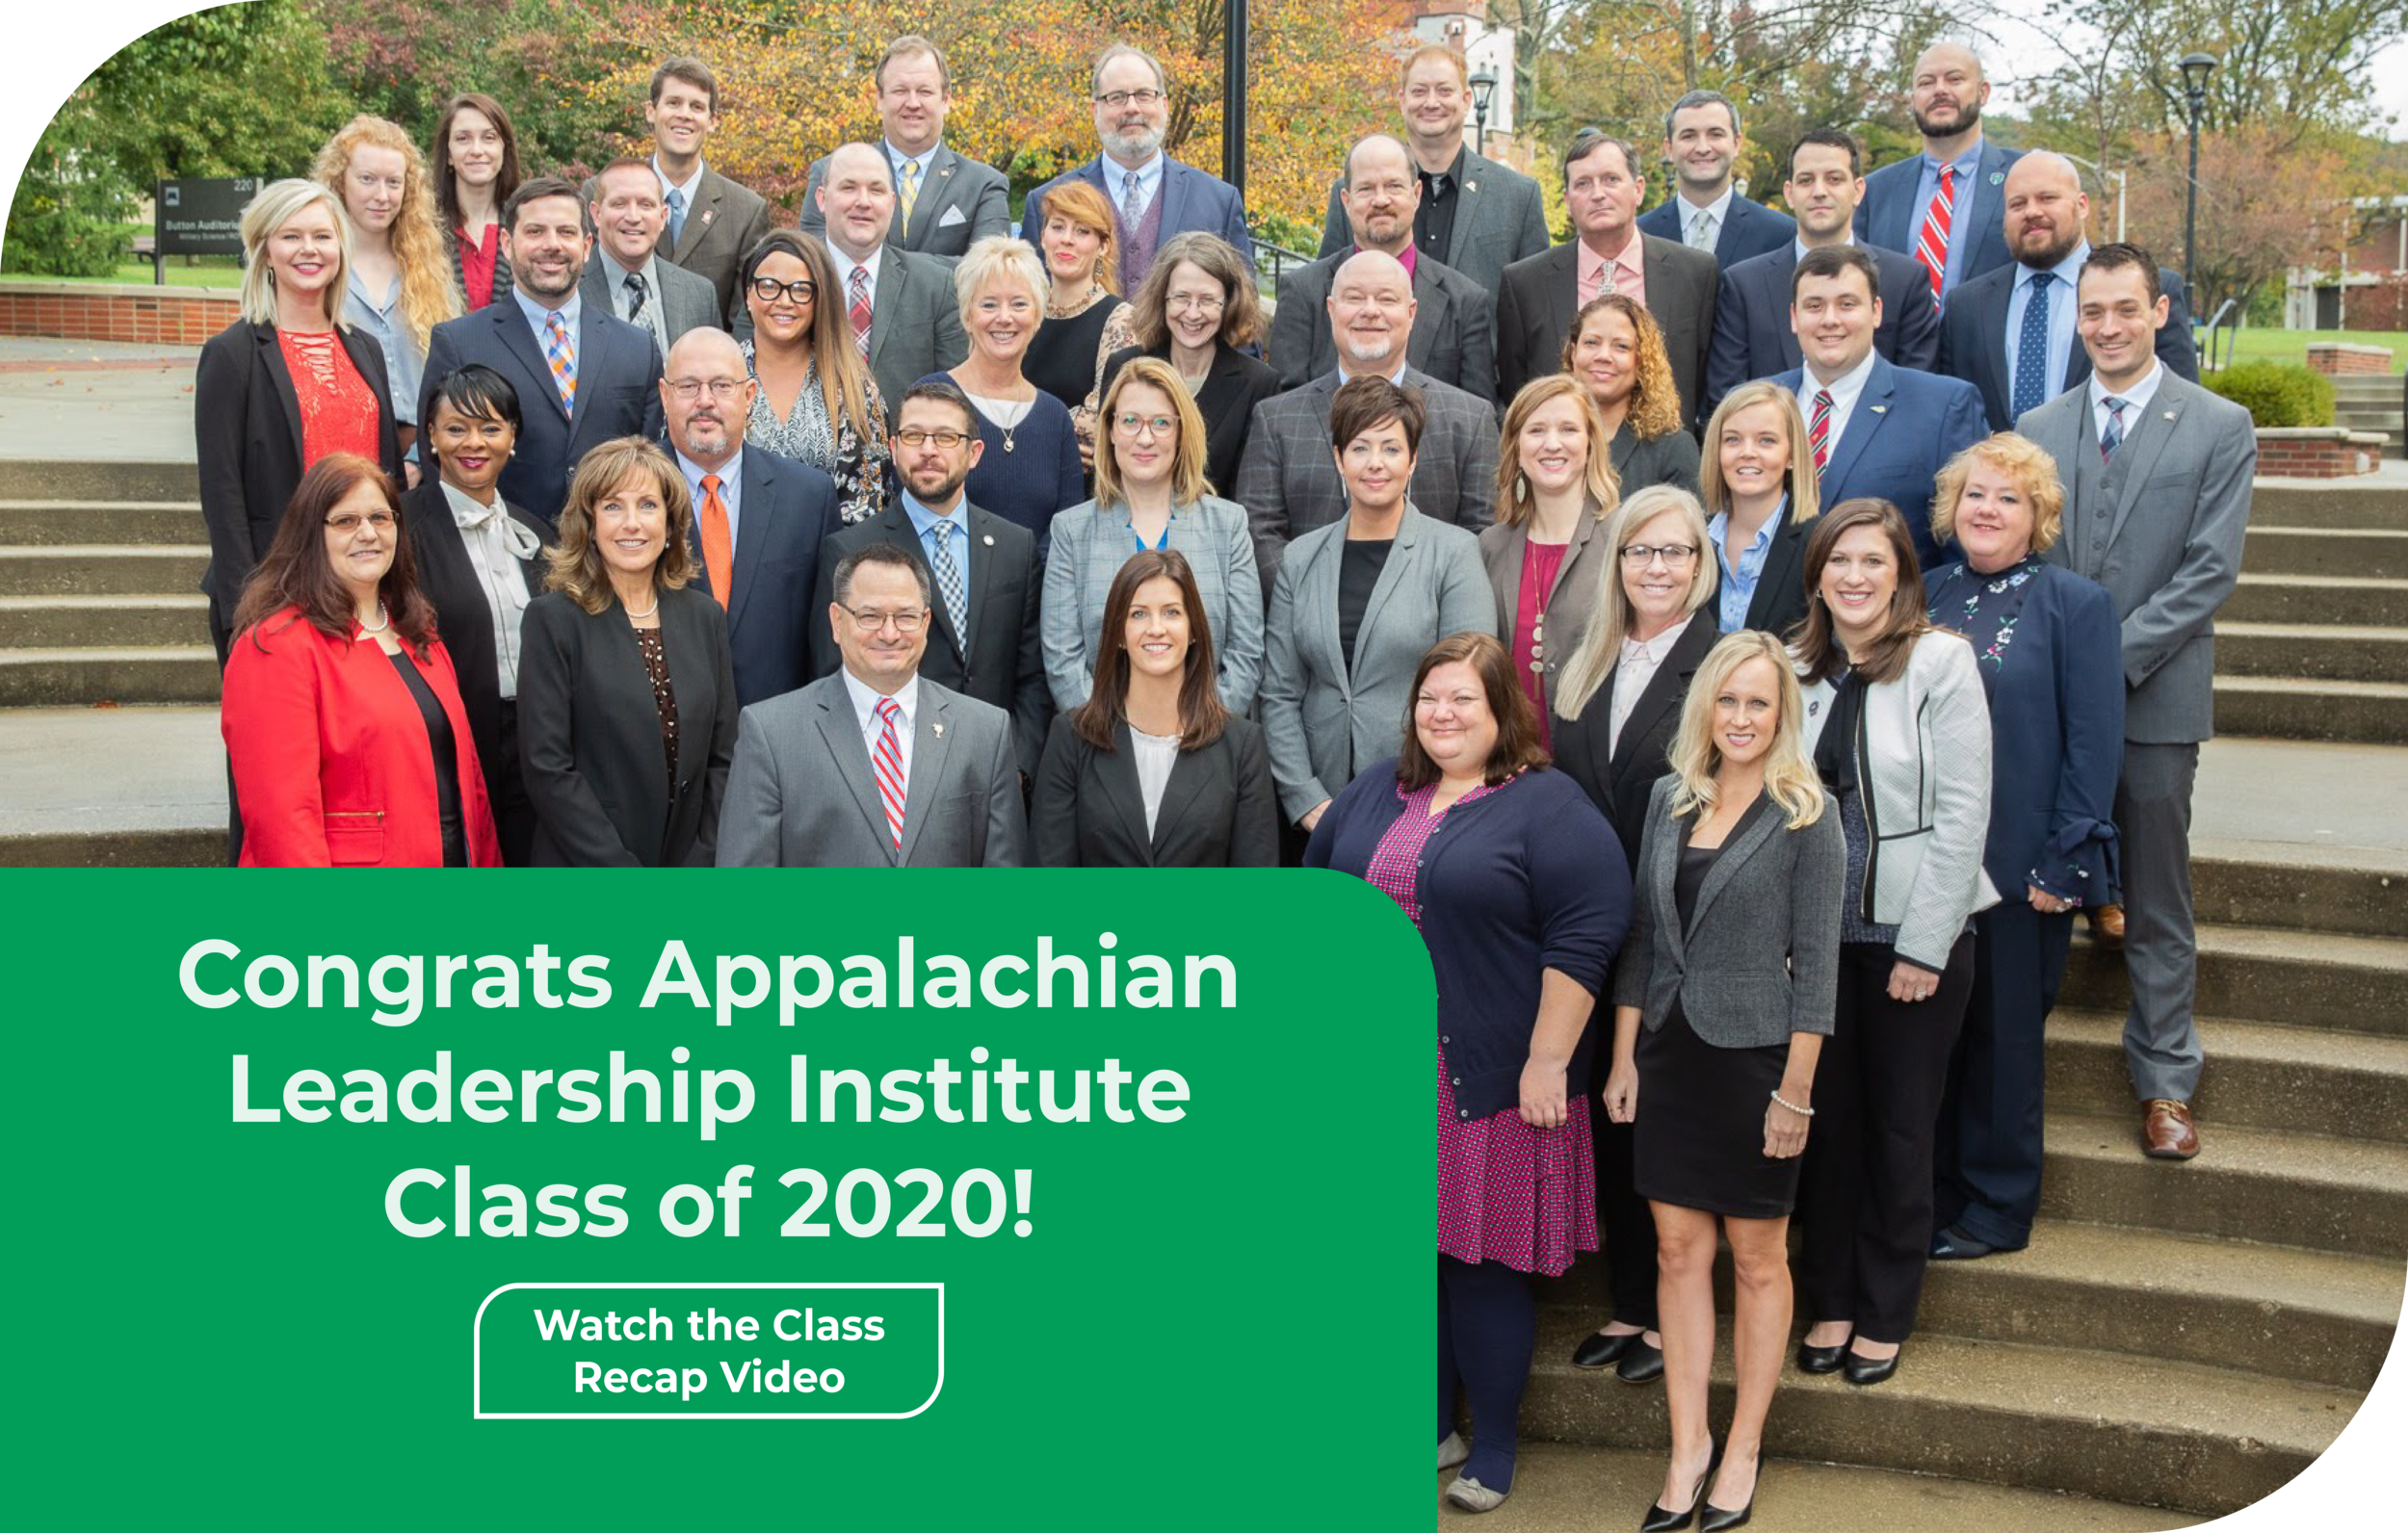 Appalachian Leadership Institute Class of 2020 in Morehead, KY